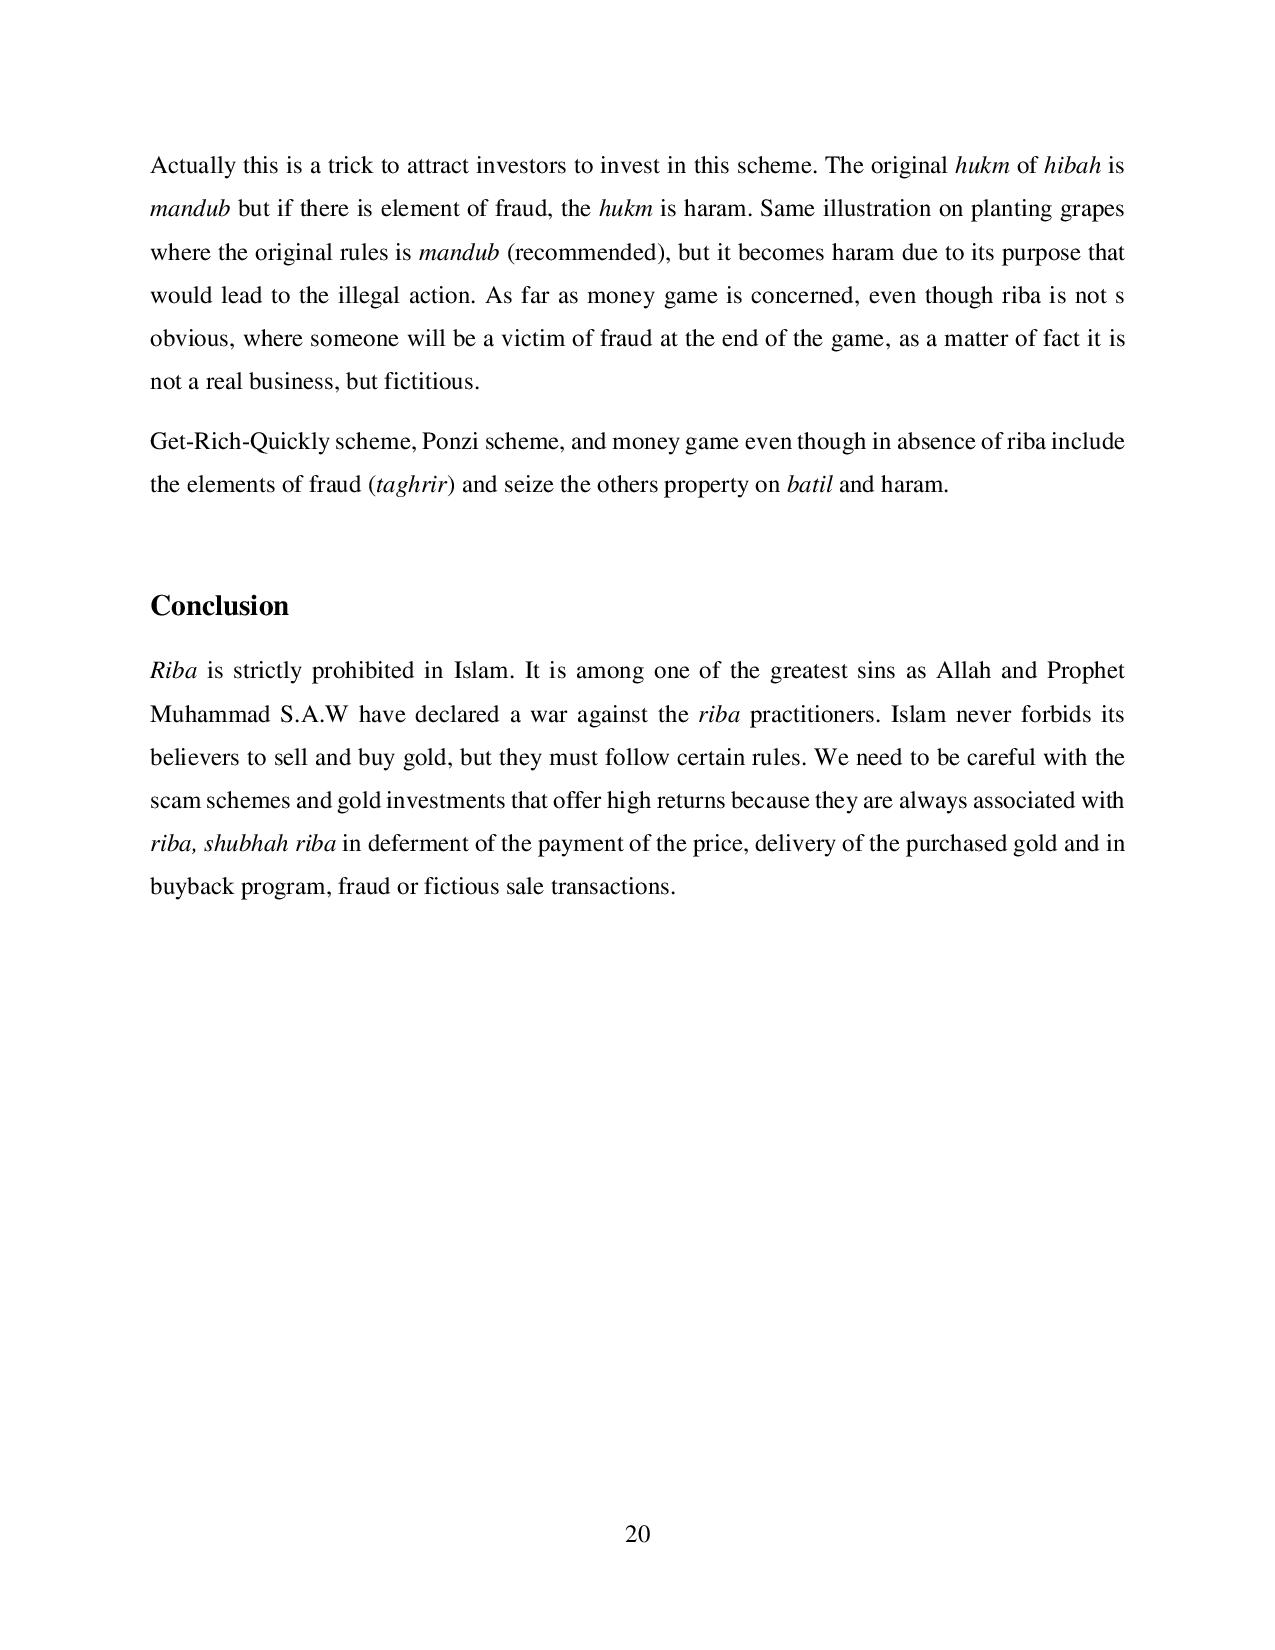 Gold Trading Shariah Issue-page-020